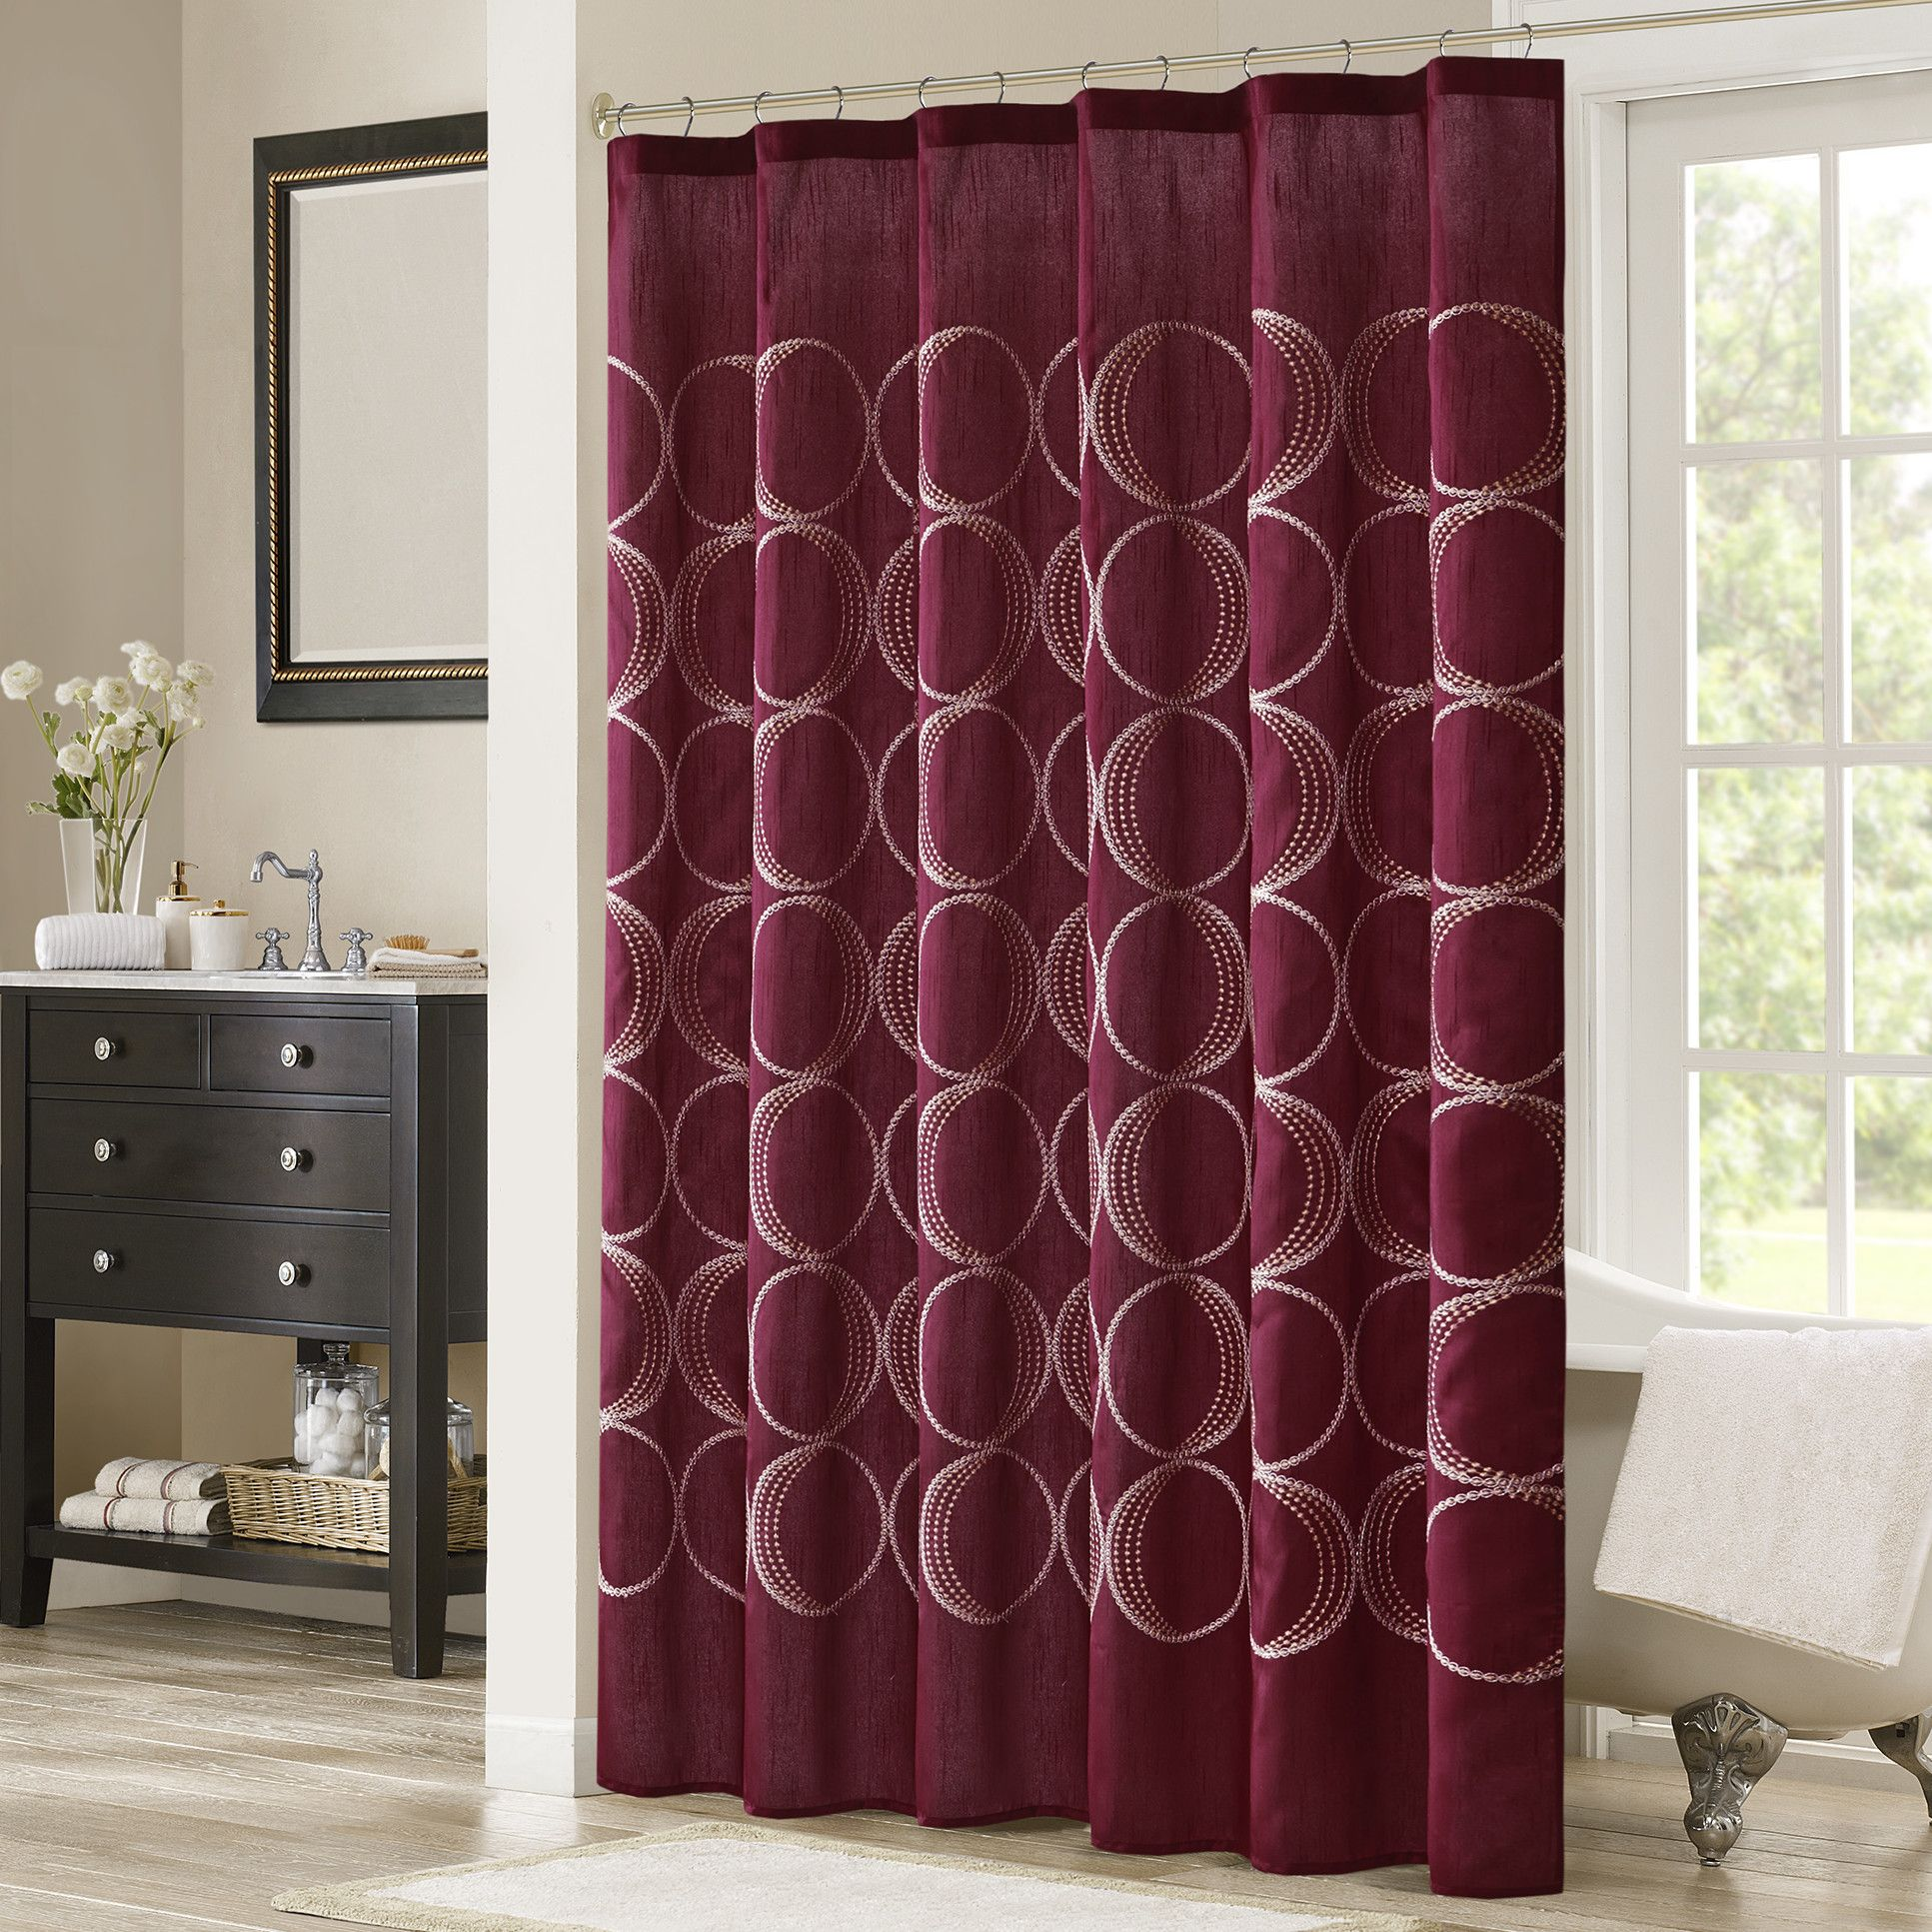 Keaton embroidered shower curtain products pinterest products